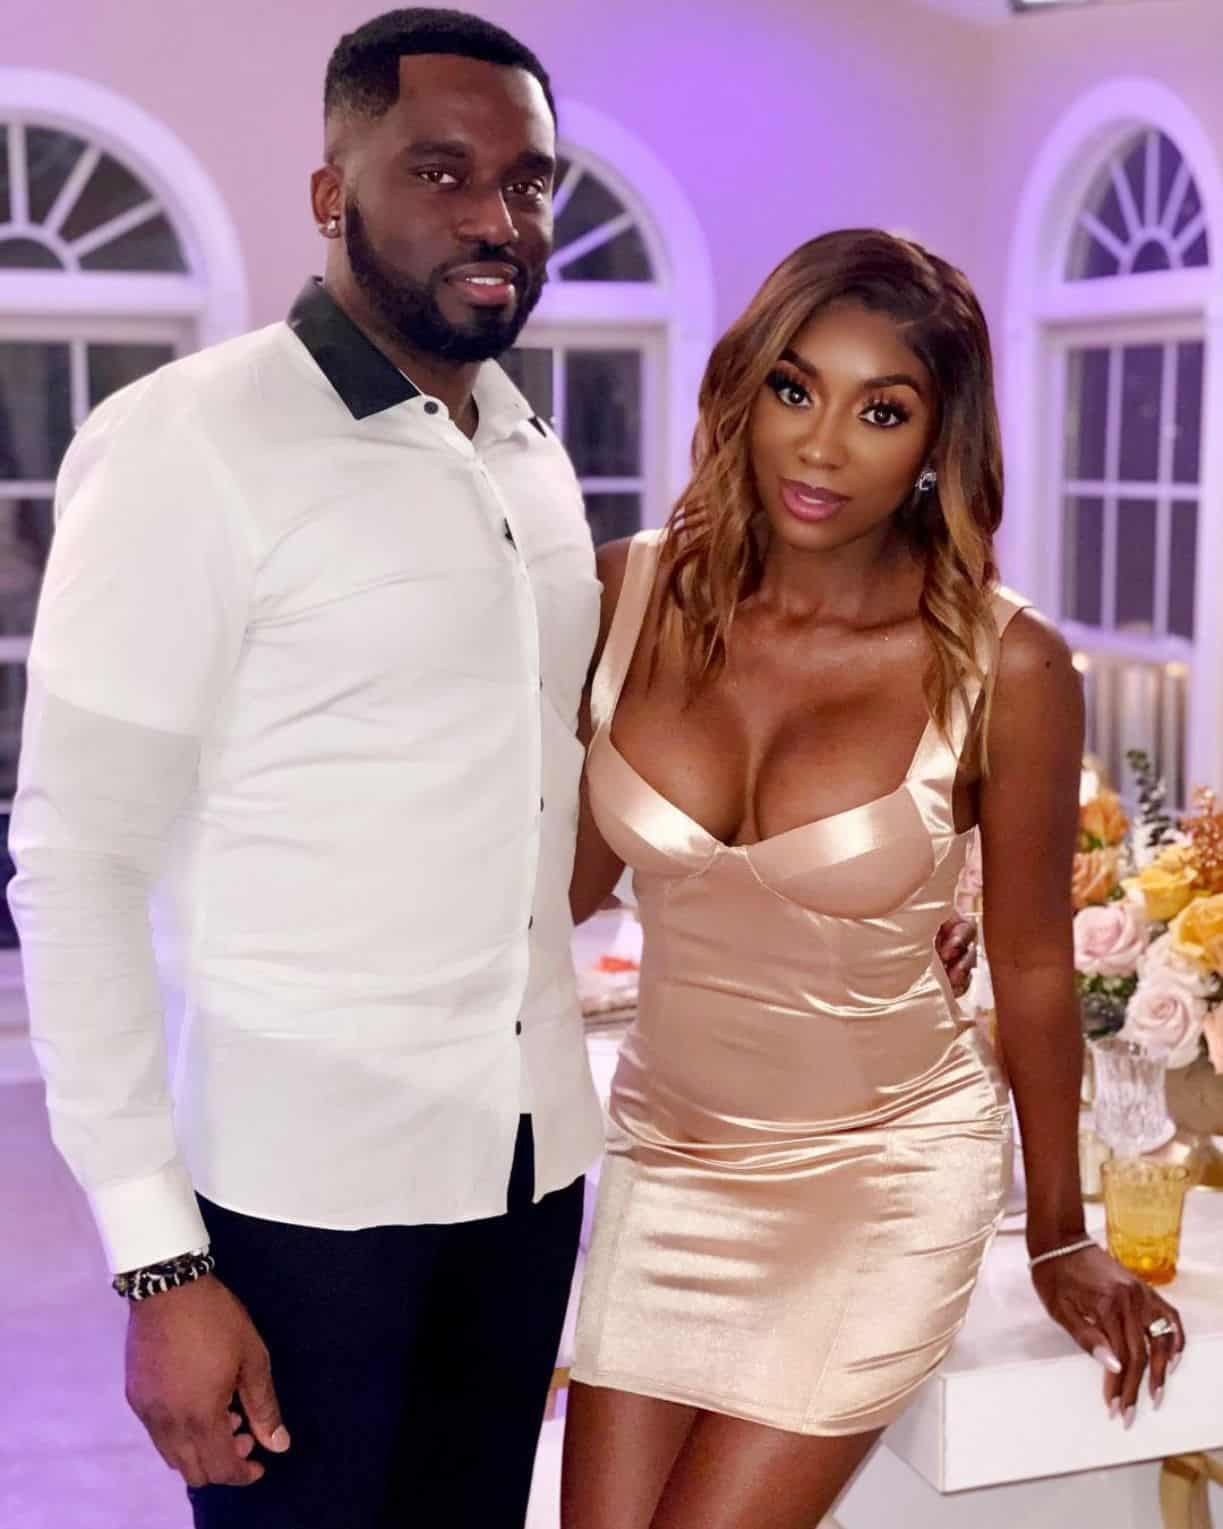 RHOP's Wendy Osefo Talks Plastic Surgery And Admits She Had A BBL, Plus She Reveals How Husband Eddie Really Feels About Her Transformation